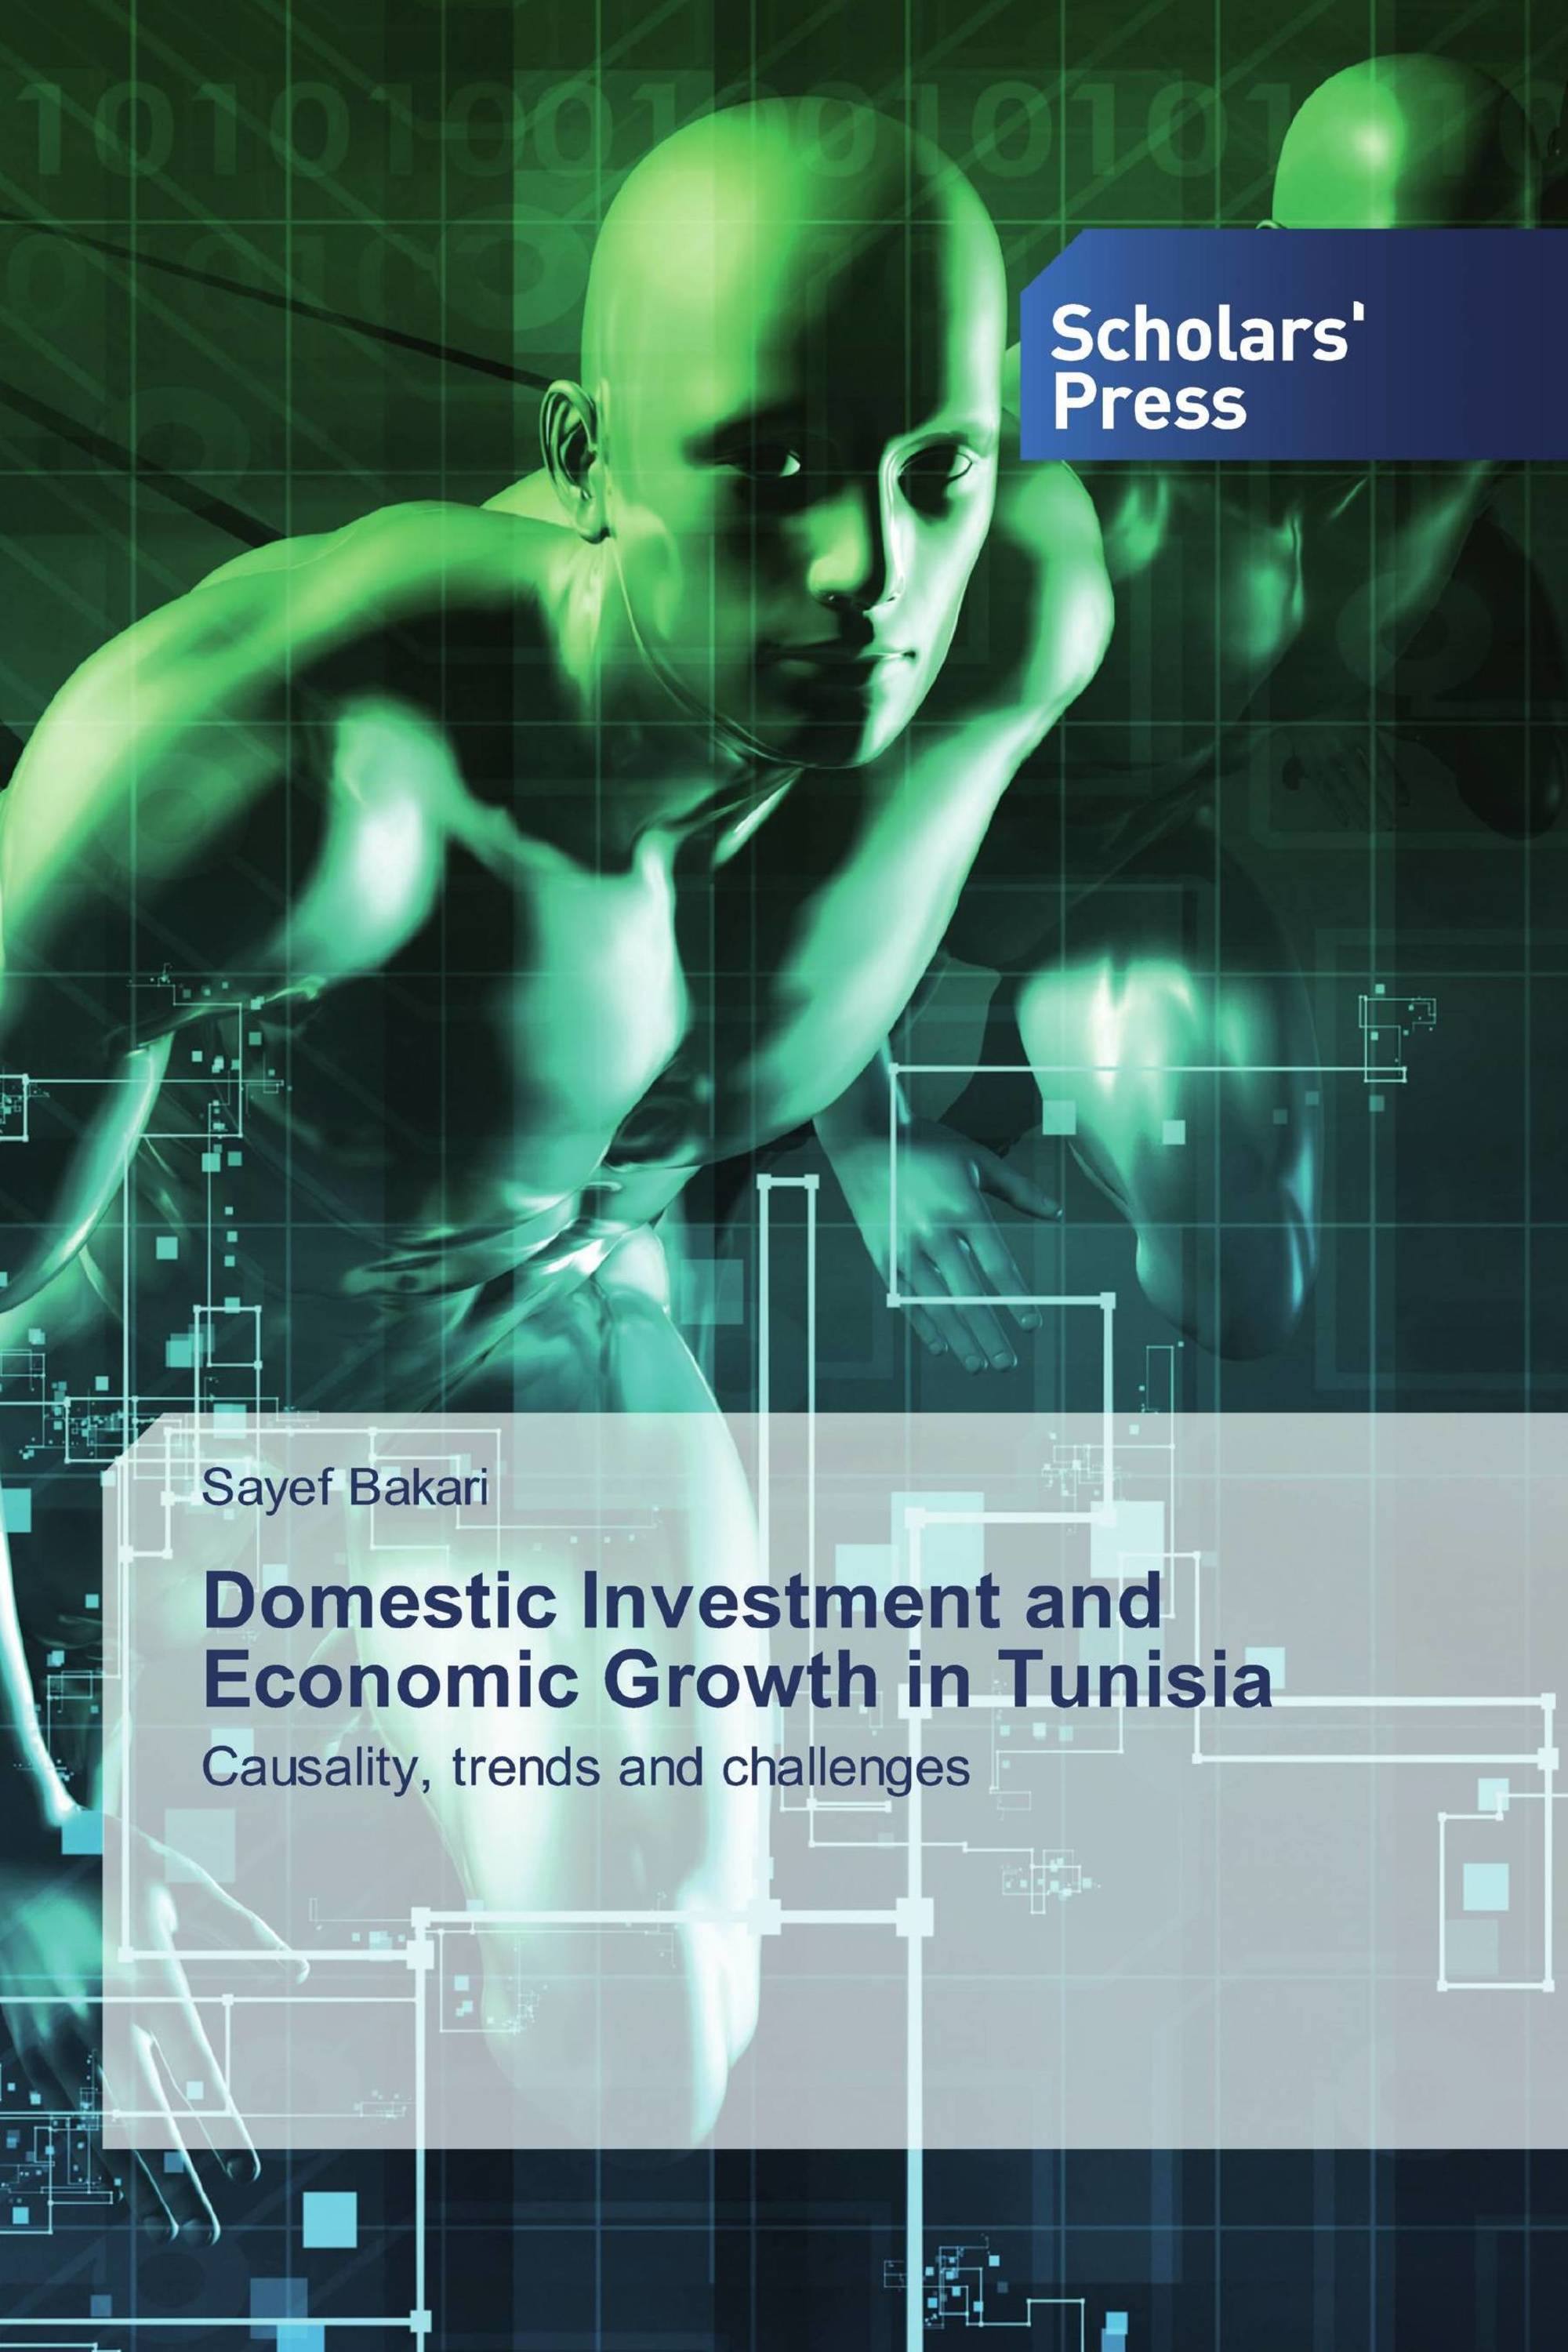 Domestic Investment and Economic Growth in Tunisia